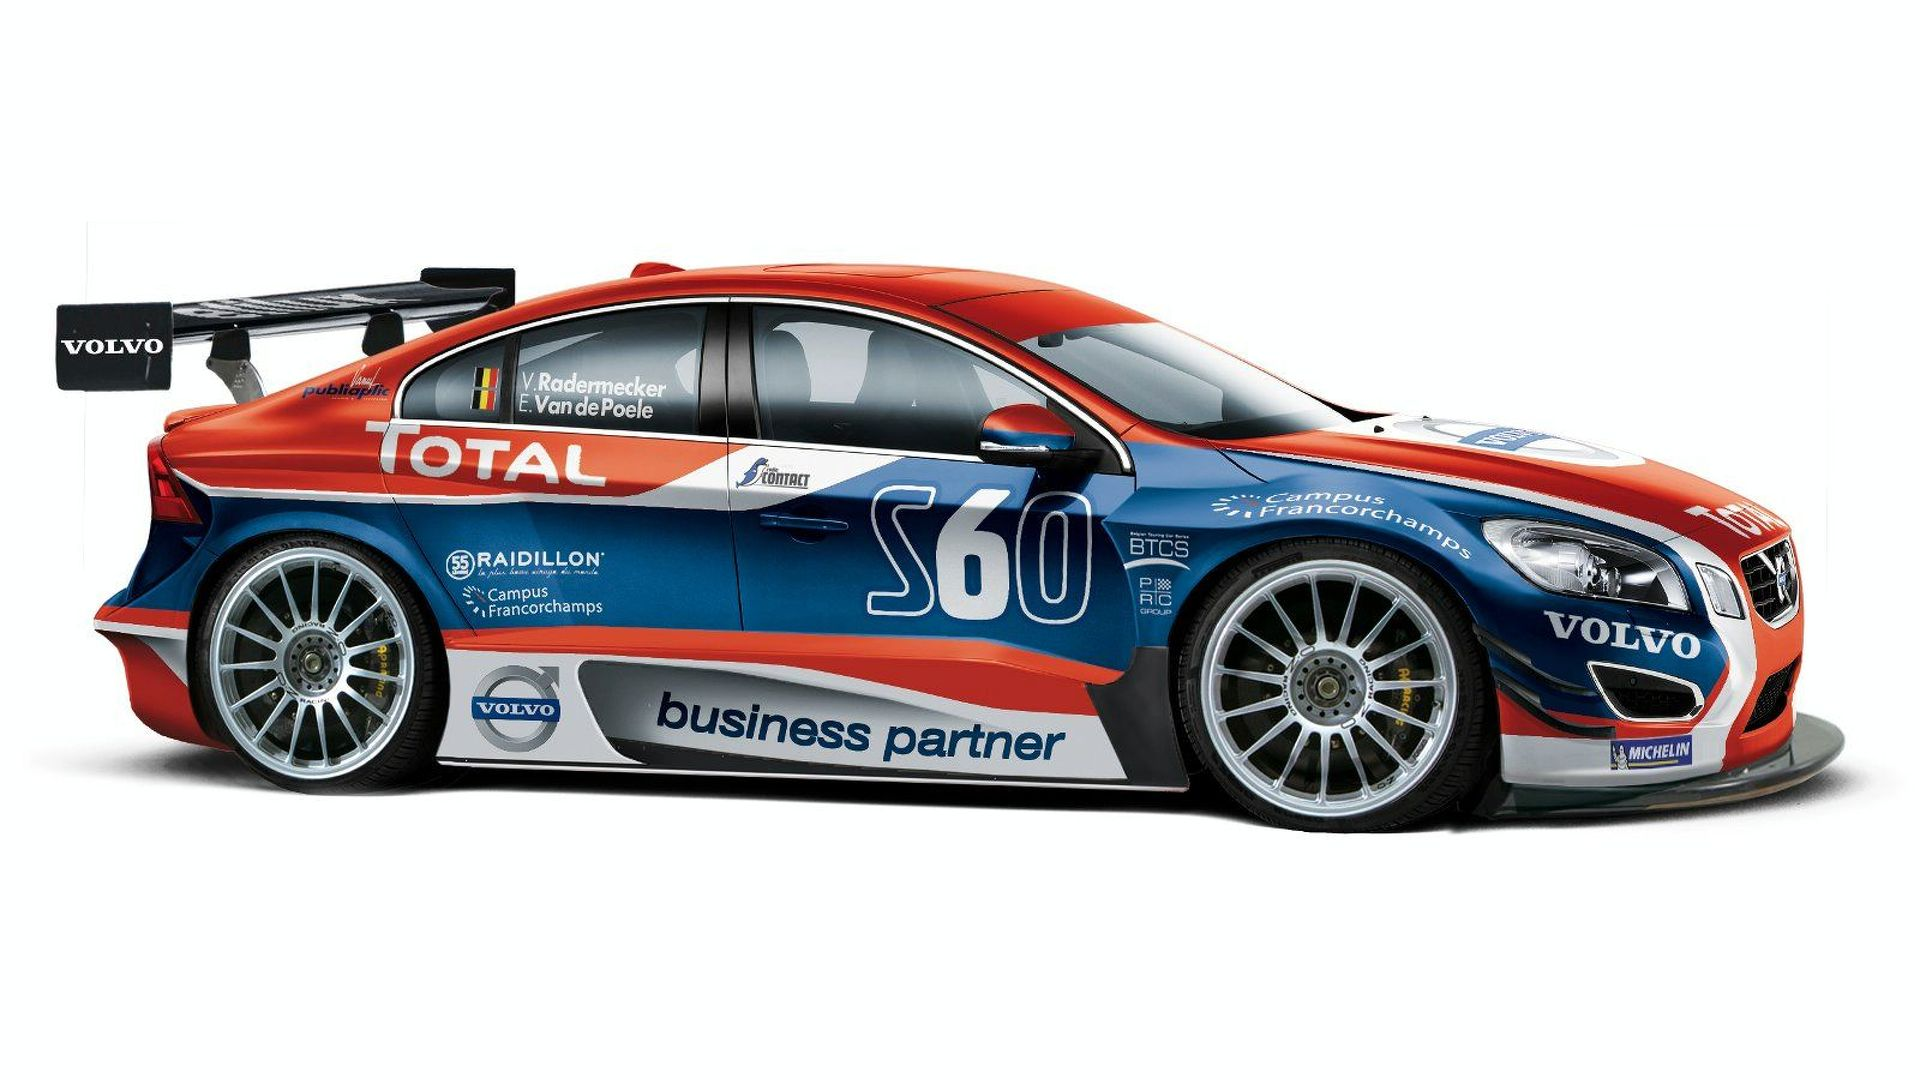 Volvo Preparing All-New S60 for Belgian Touring Car Series